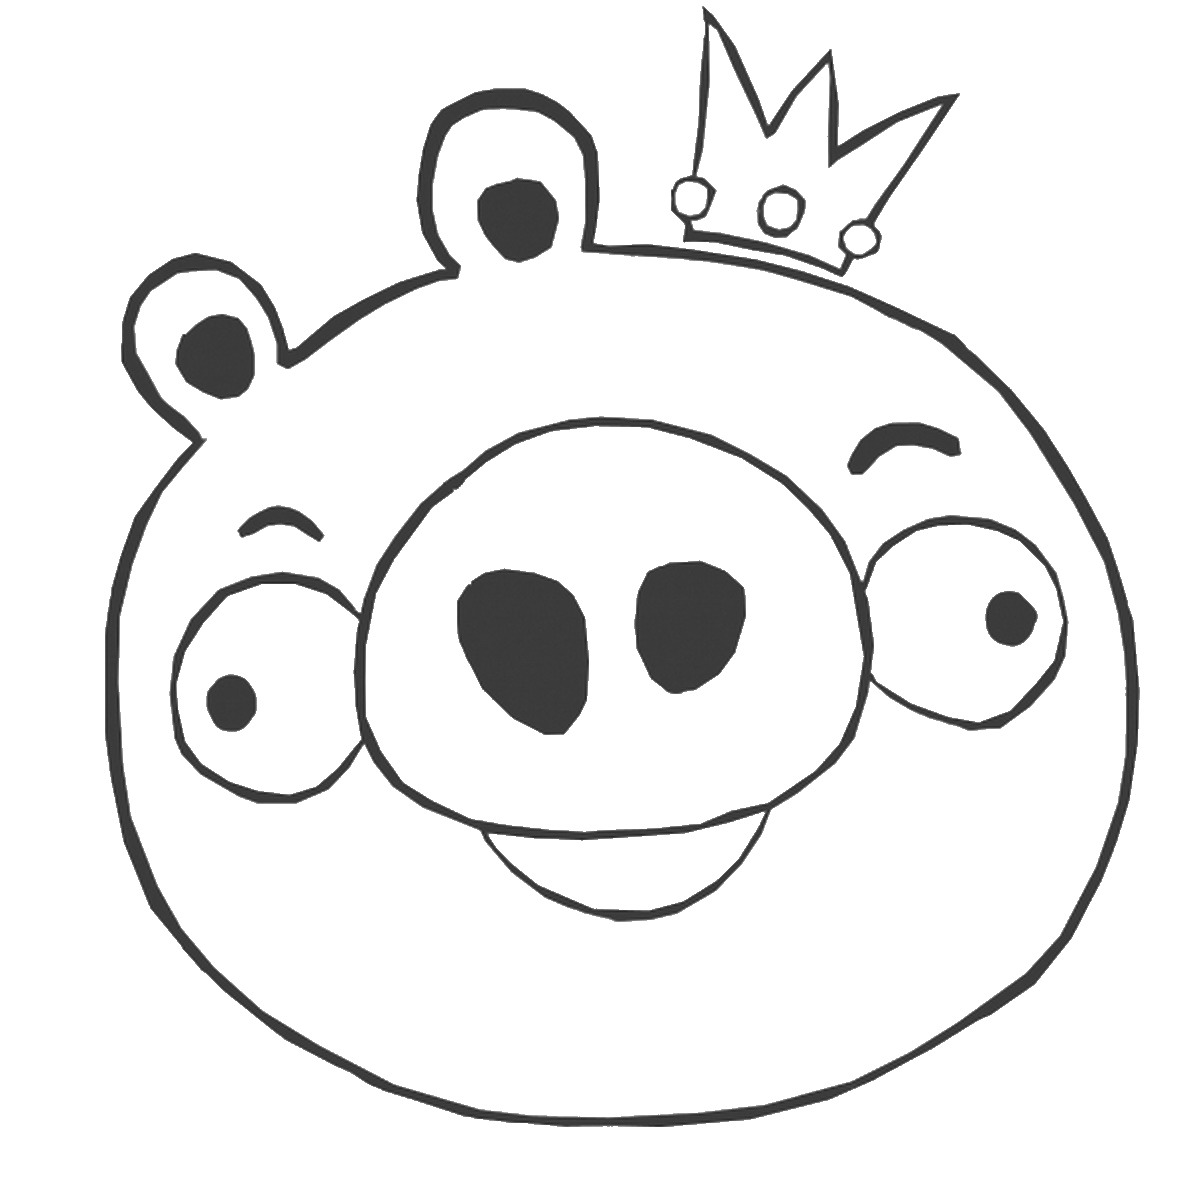 coloring pages for angry birds angry birds easter coloring page for coloring angry birds pages